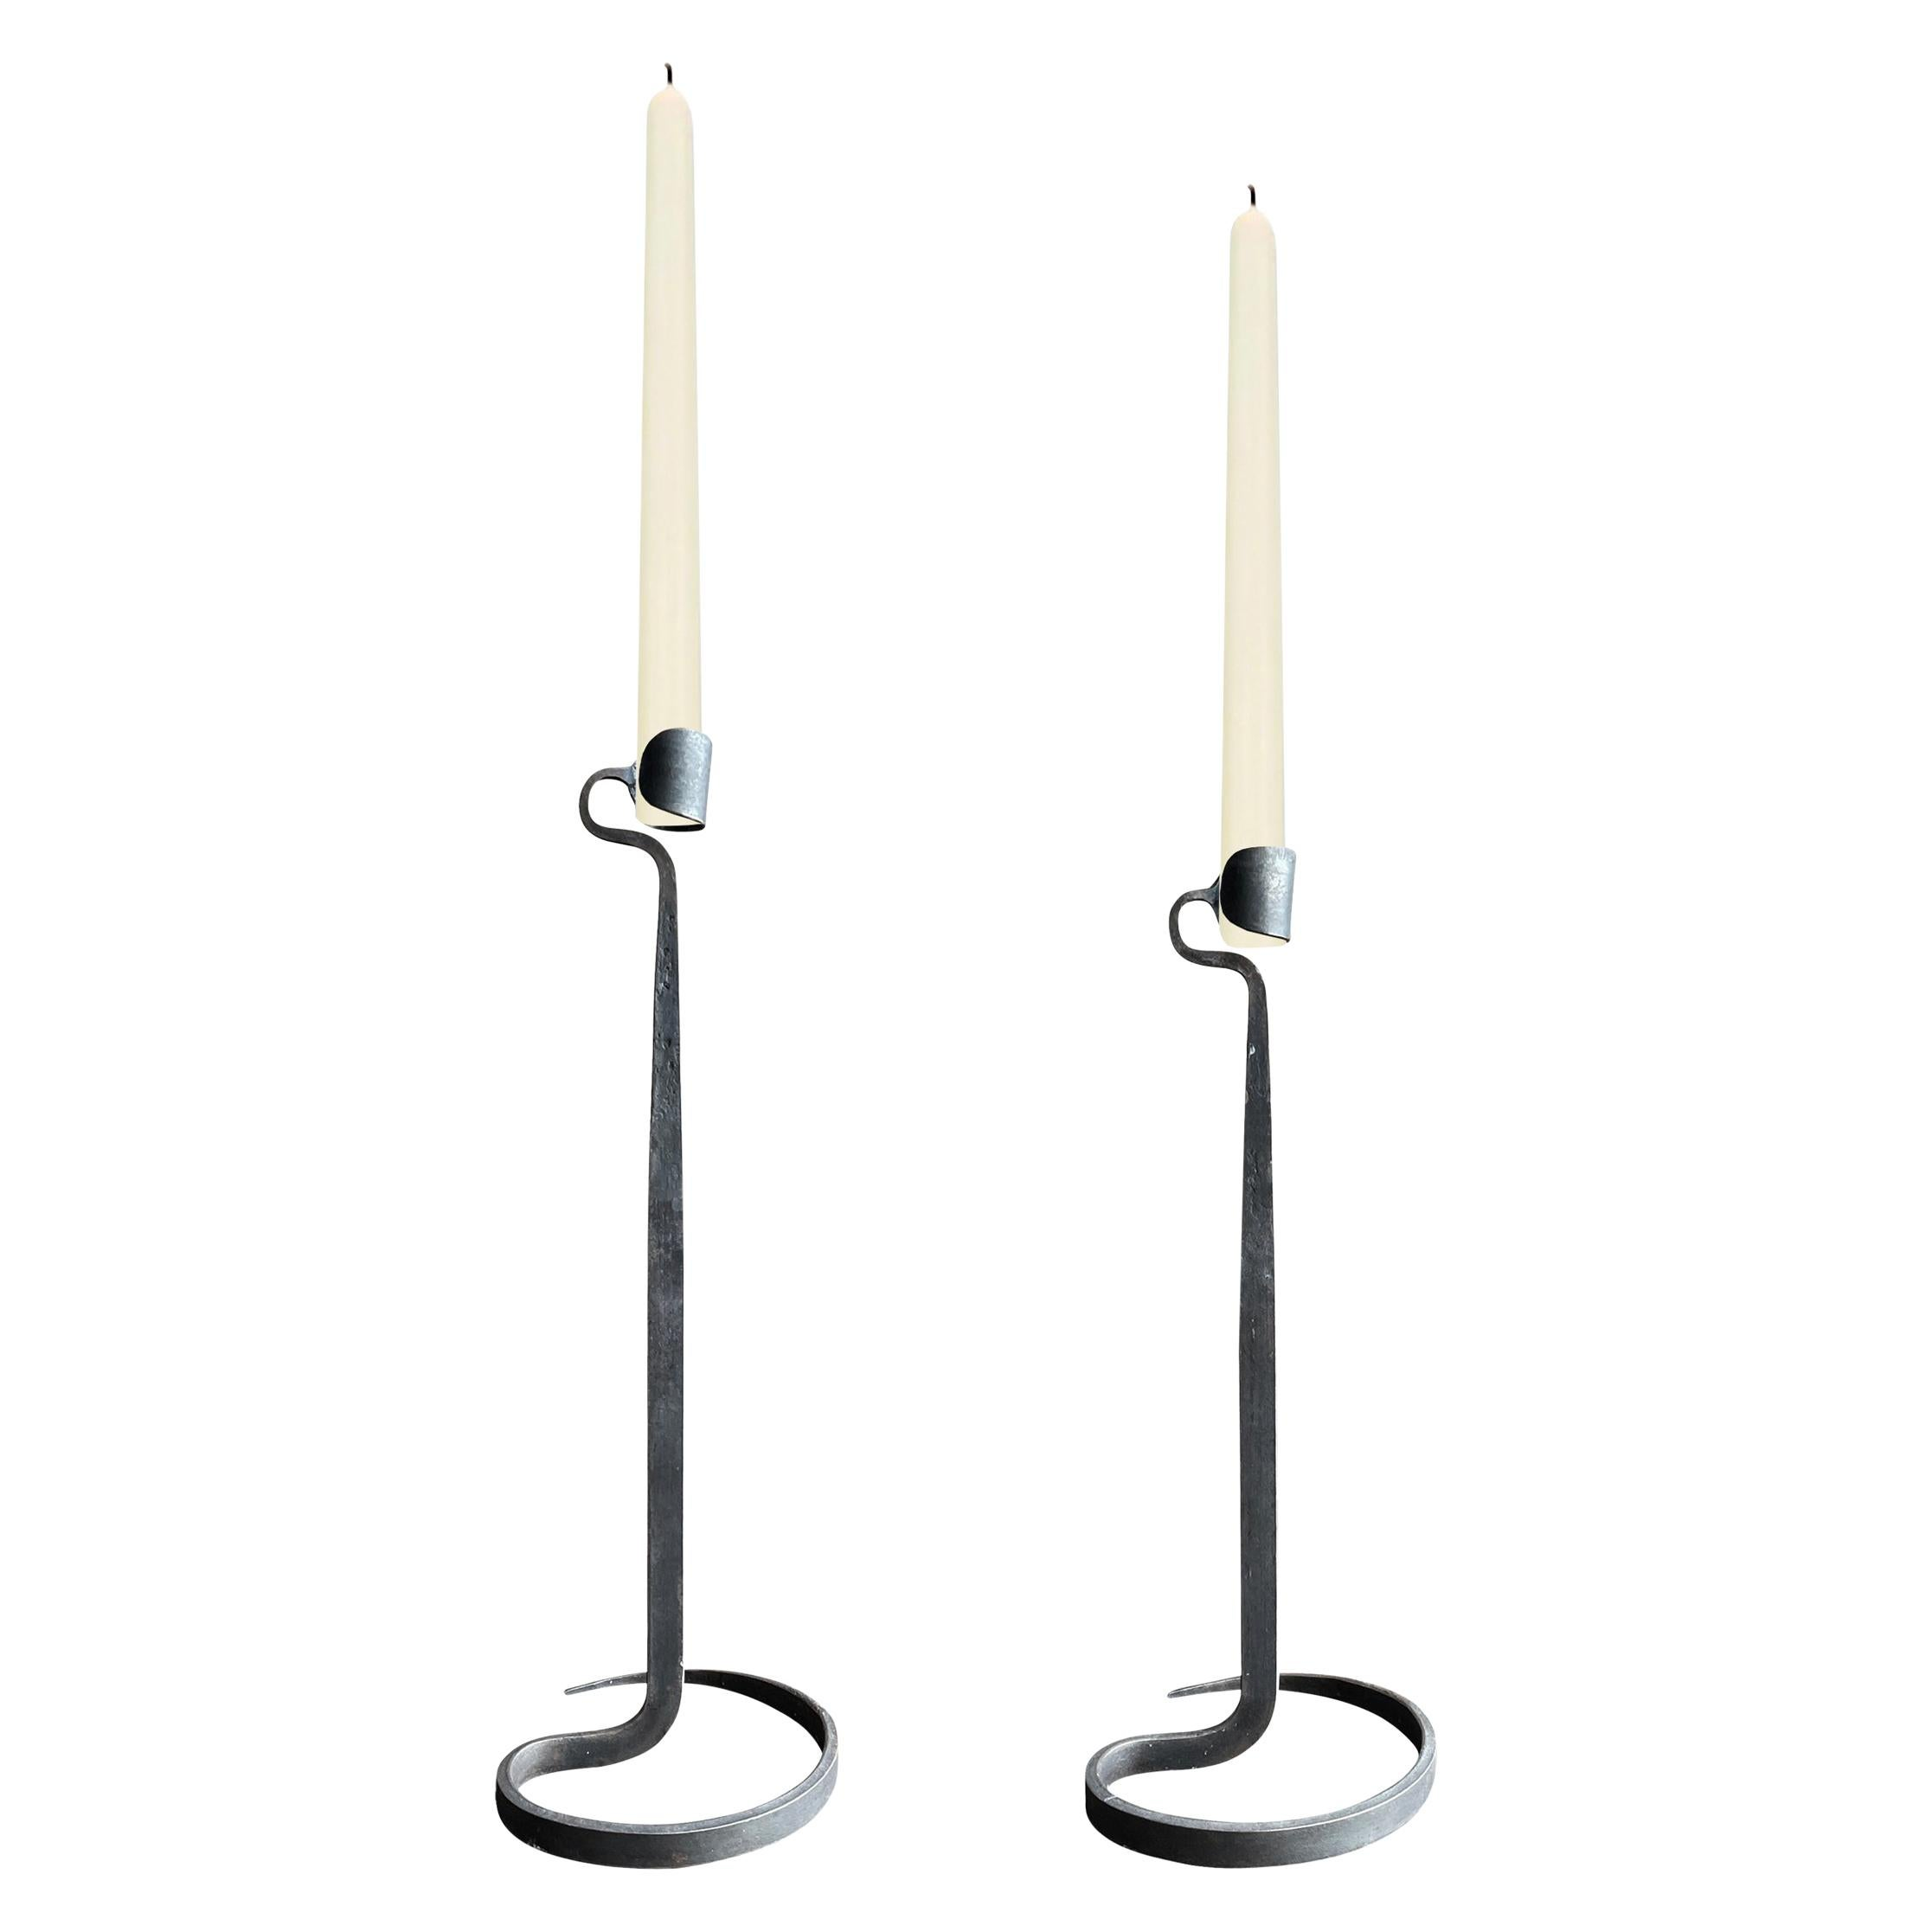 Pair of Wrought Iron Candlesticks